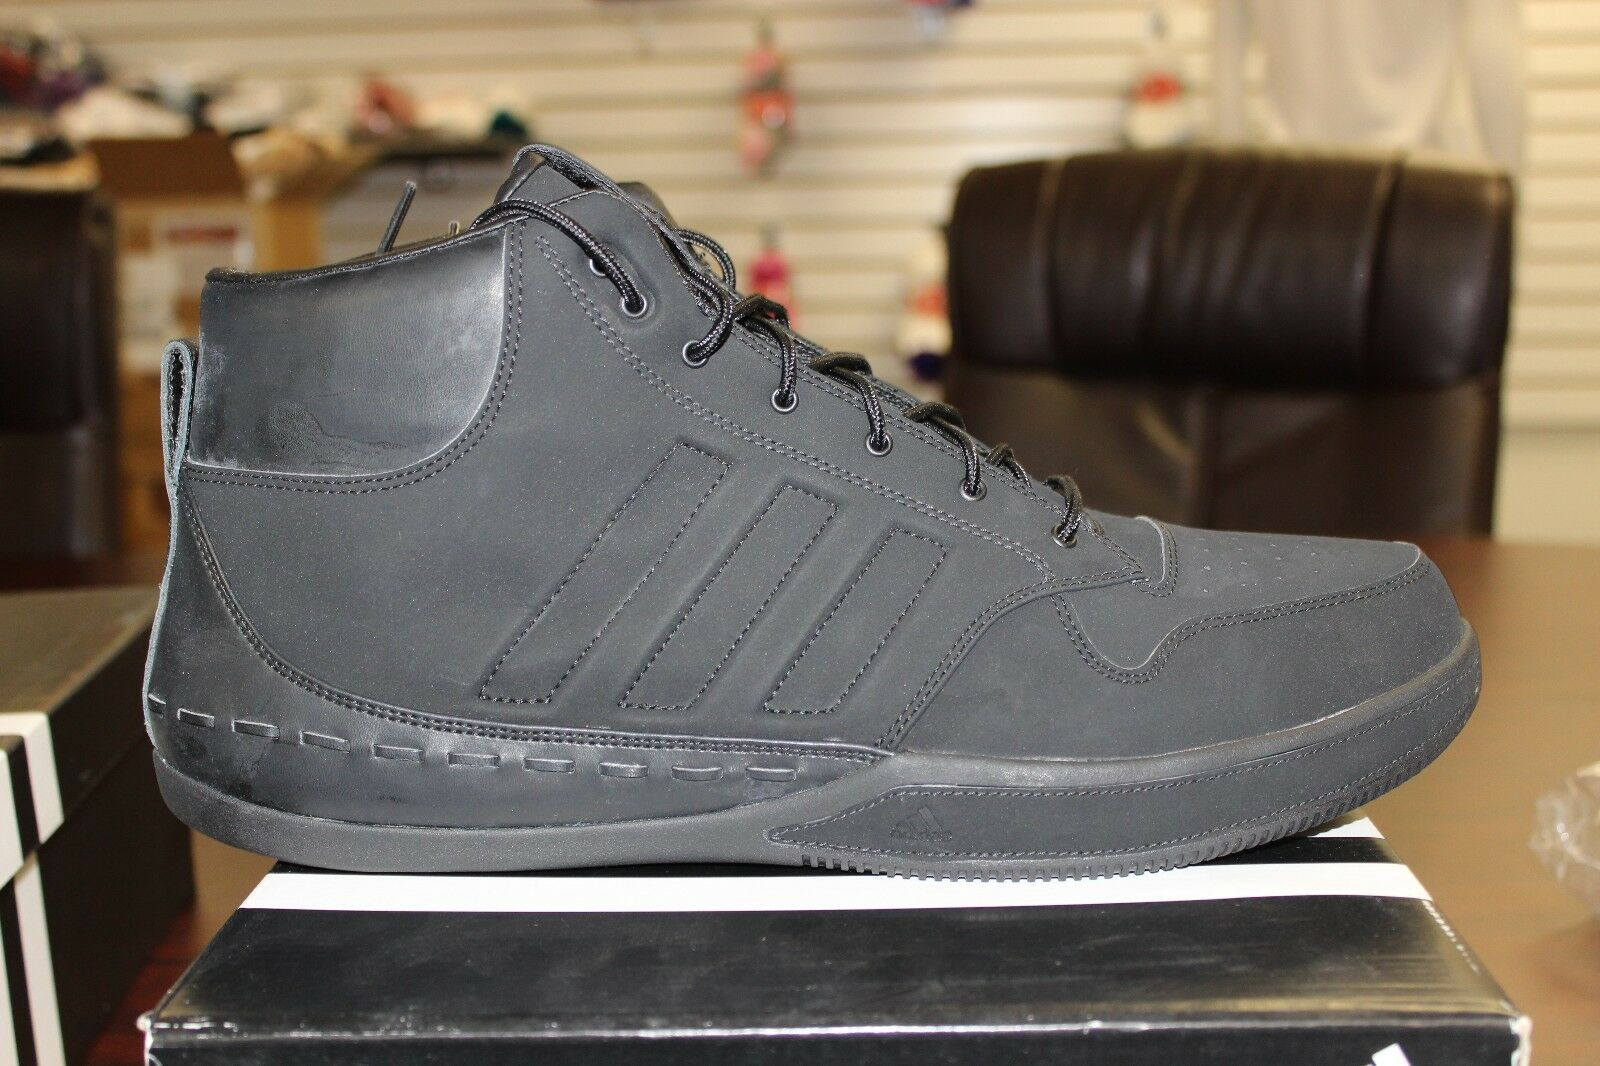 Adidas Lusso Mid Nere G09726 Nuovo